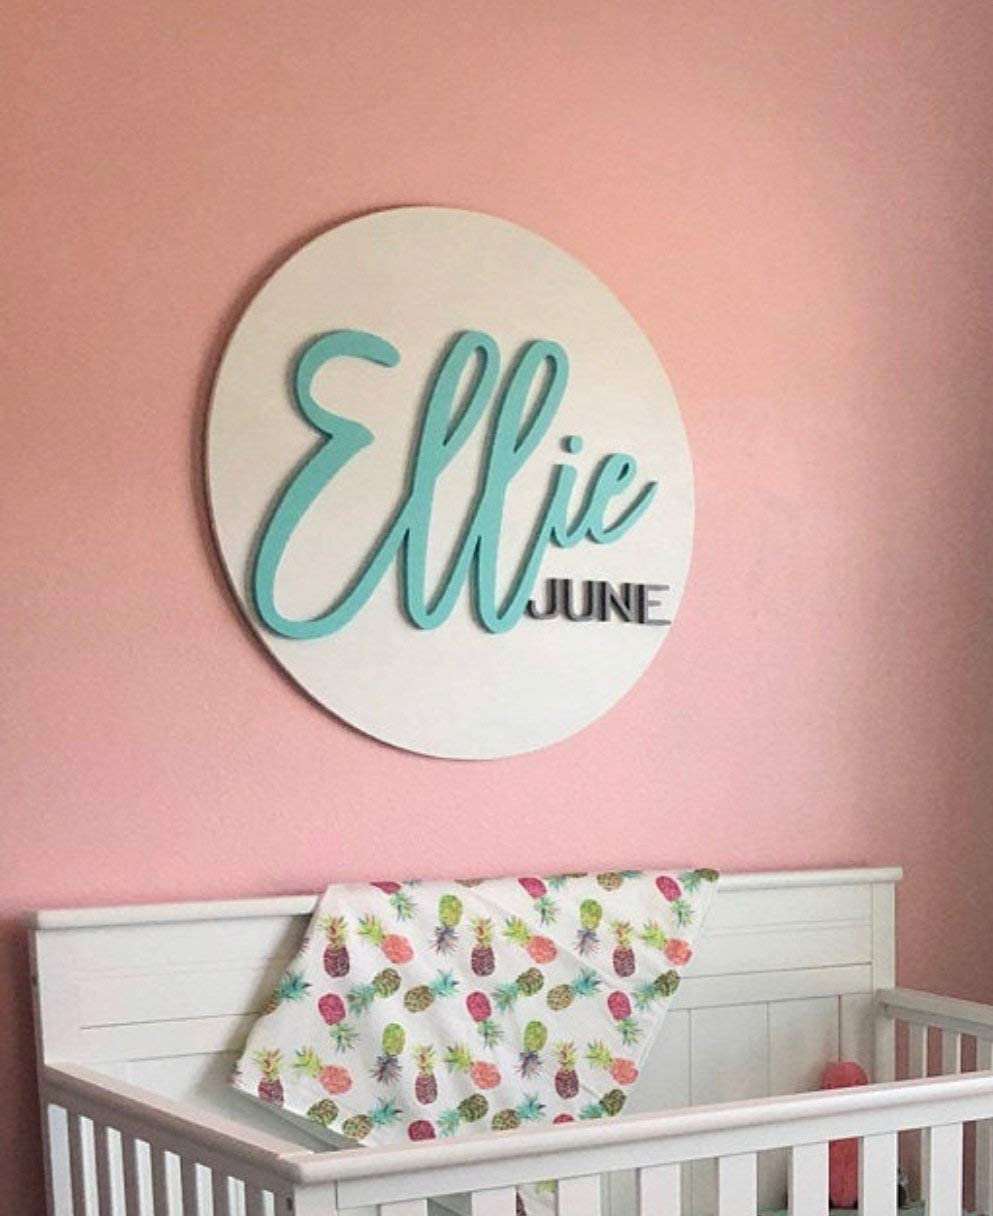 daoyiqi Custom Name Sign Round Sign Baby Name Sign Nursery Room Decor Wood Sign Nursery Wall Art Wood Name Board Wooden Printed Wood Plaque Sign 12 Inch